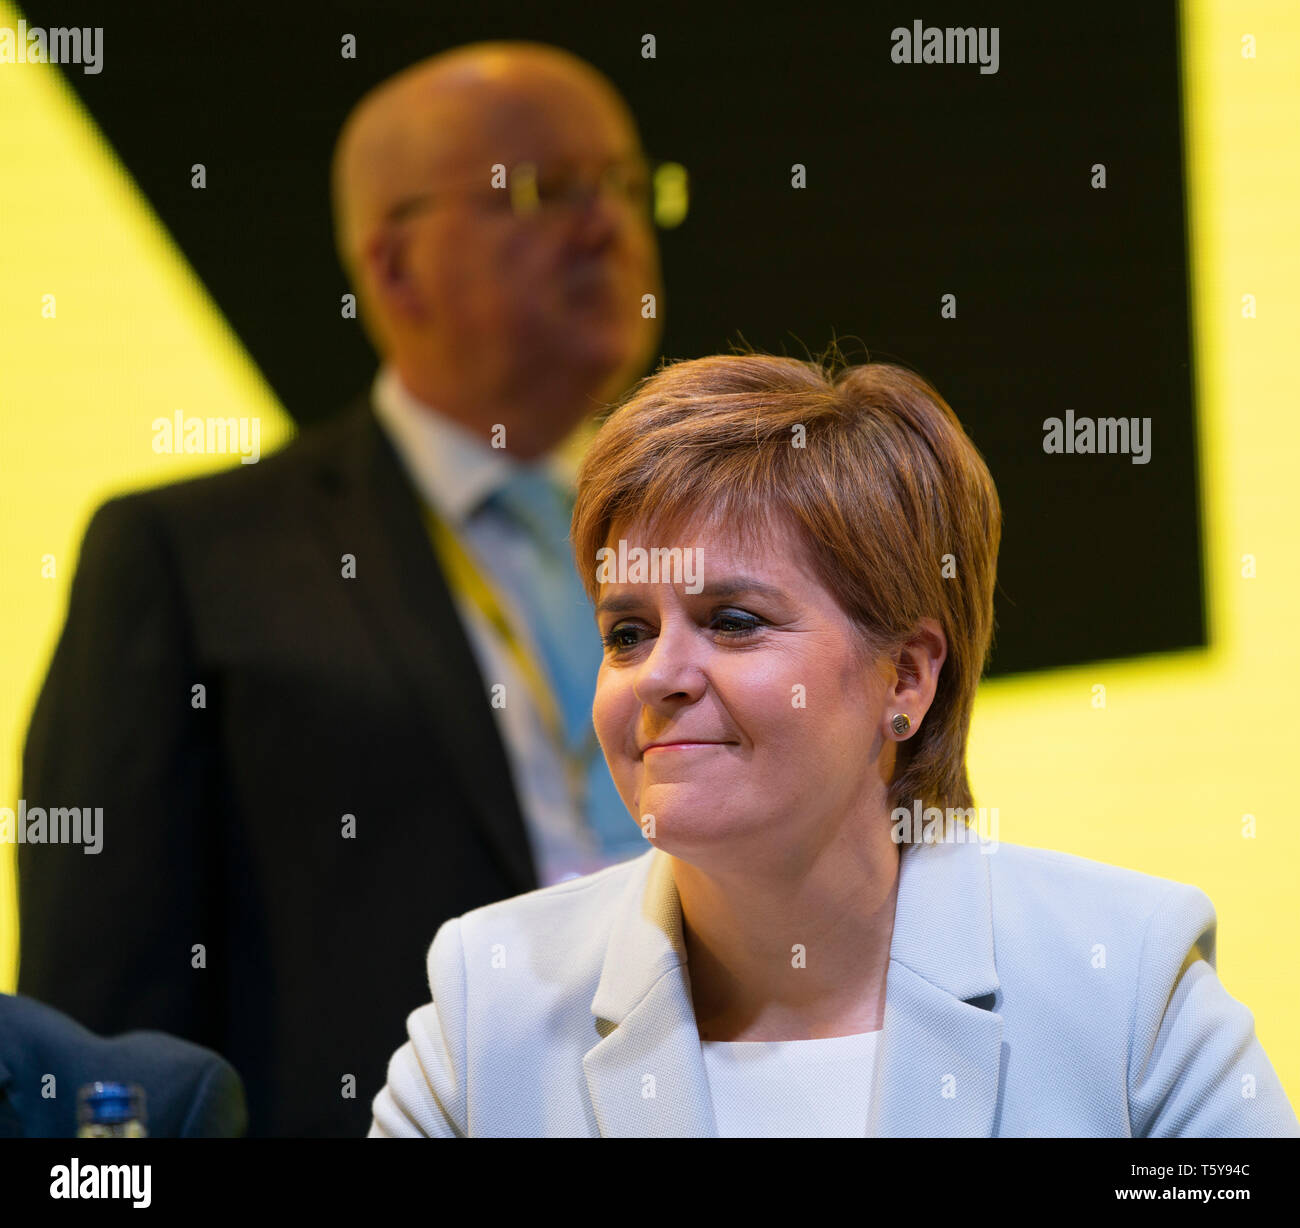 Edinburgh, Scotland, UK. 27 April, 2019. SNP ( Scottish National Party) Spring Conference takes place at the EICC ( Edinburgh International Conference Centre) in Edinburgh. Pictured; First Minister Nicola Sturgeon and her husband SNP CEO Peter Murrell Credit: Iain Masterton/Alamy Live News - Stock Image